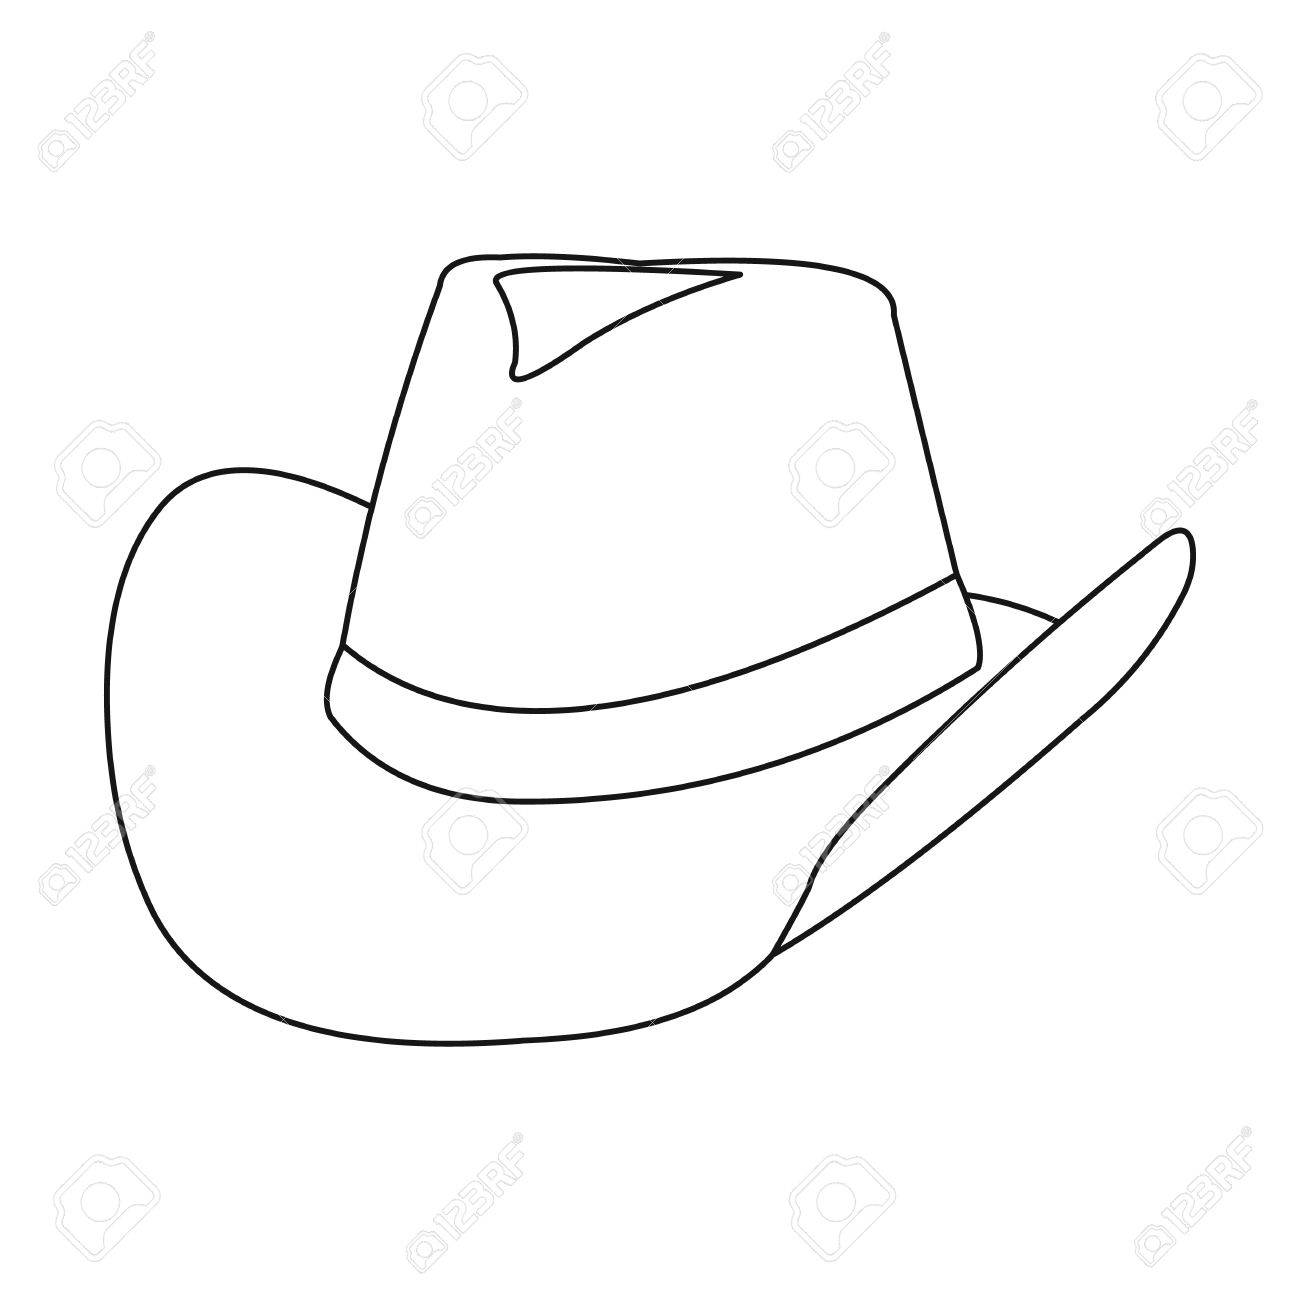 13 High Quality Cowboy Outlines.